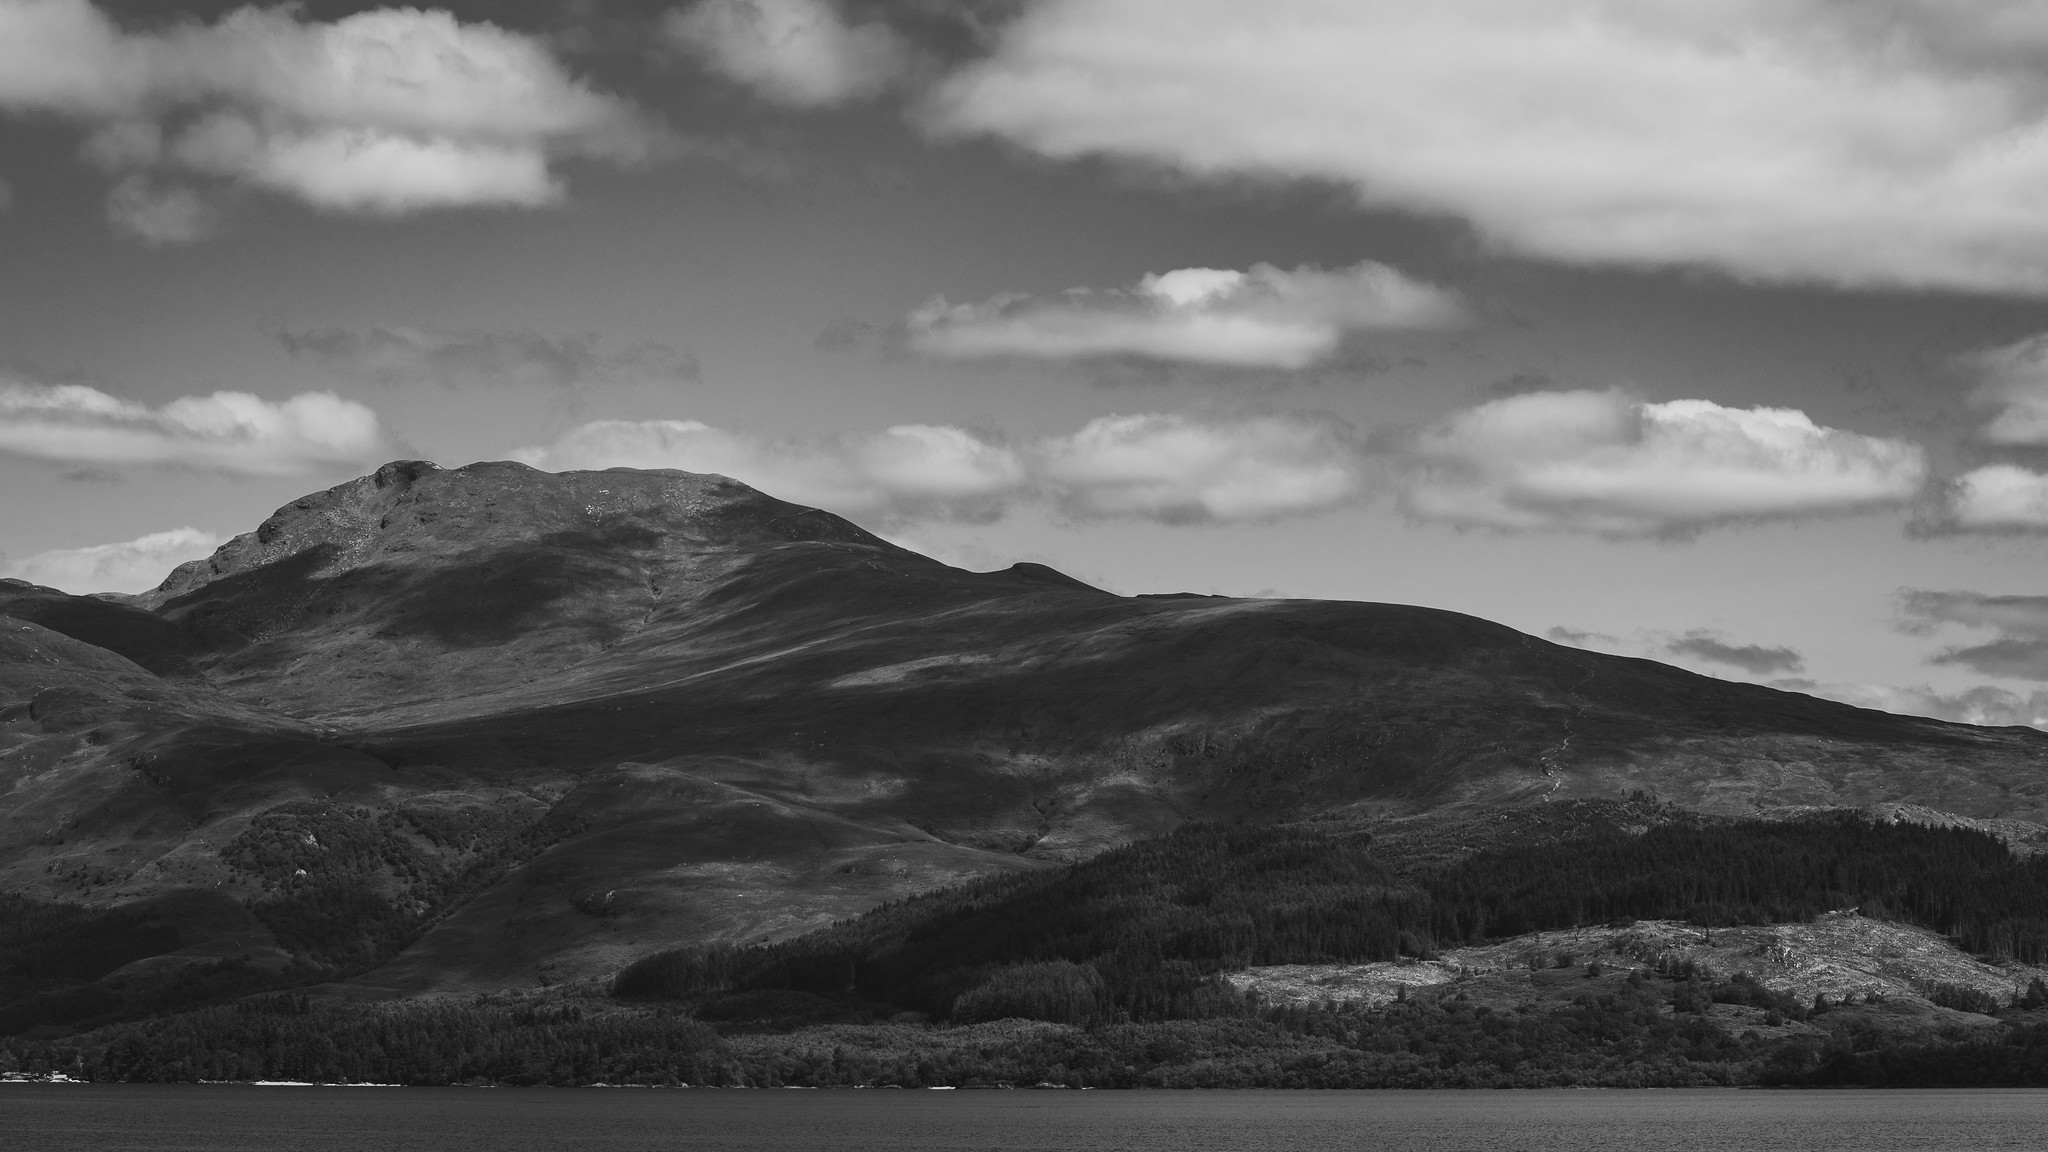 Ben Lomond from the shore of Loch Lomond.